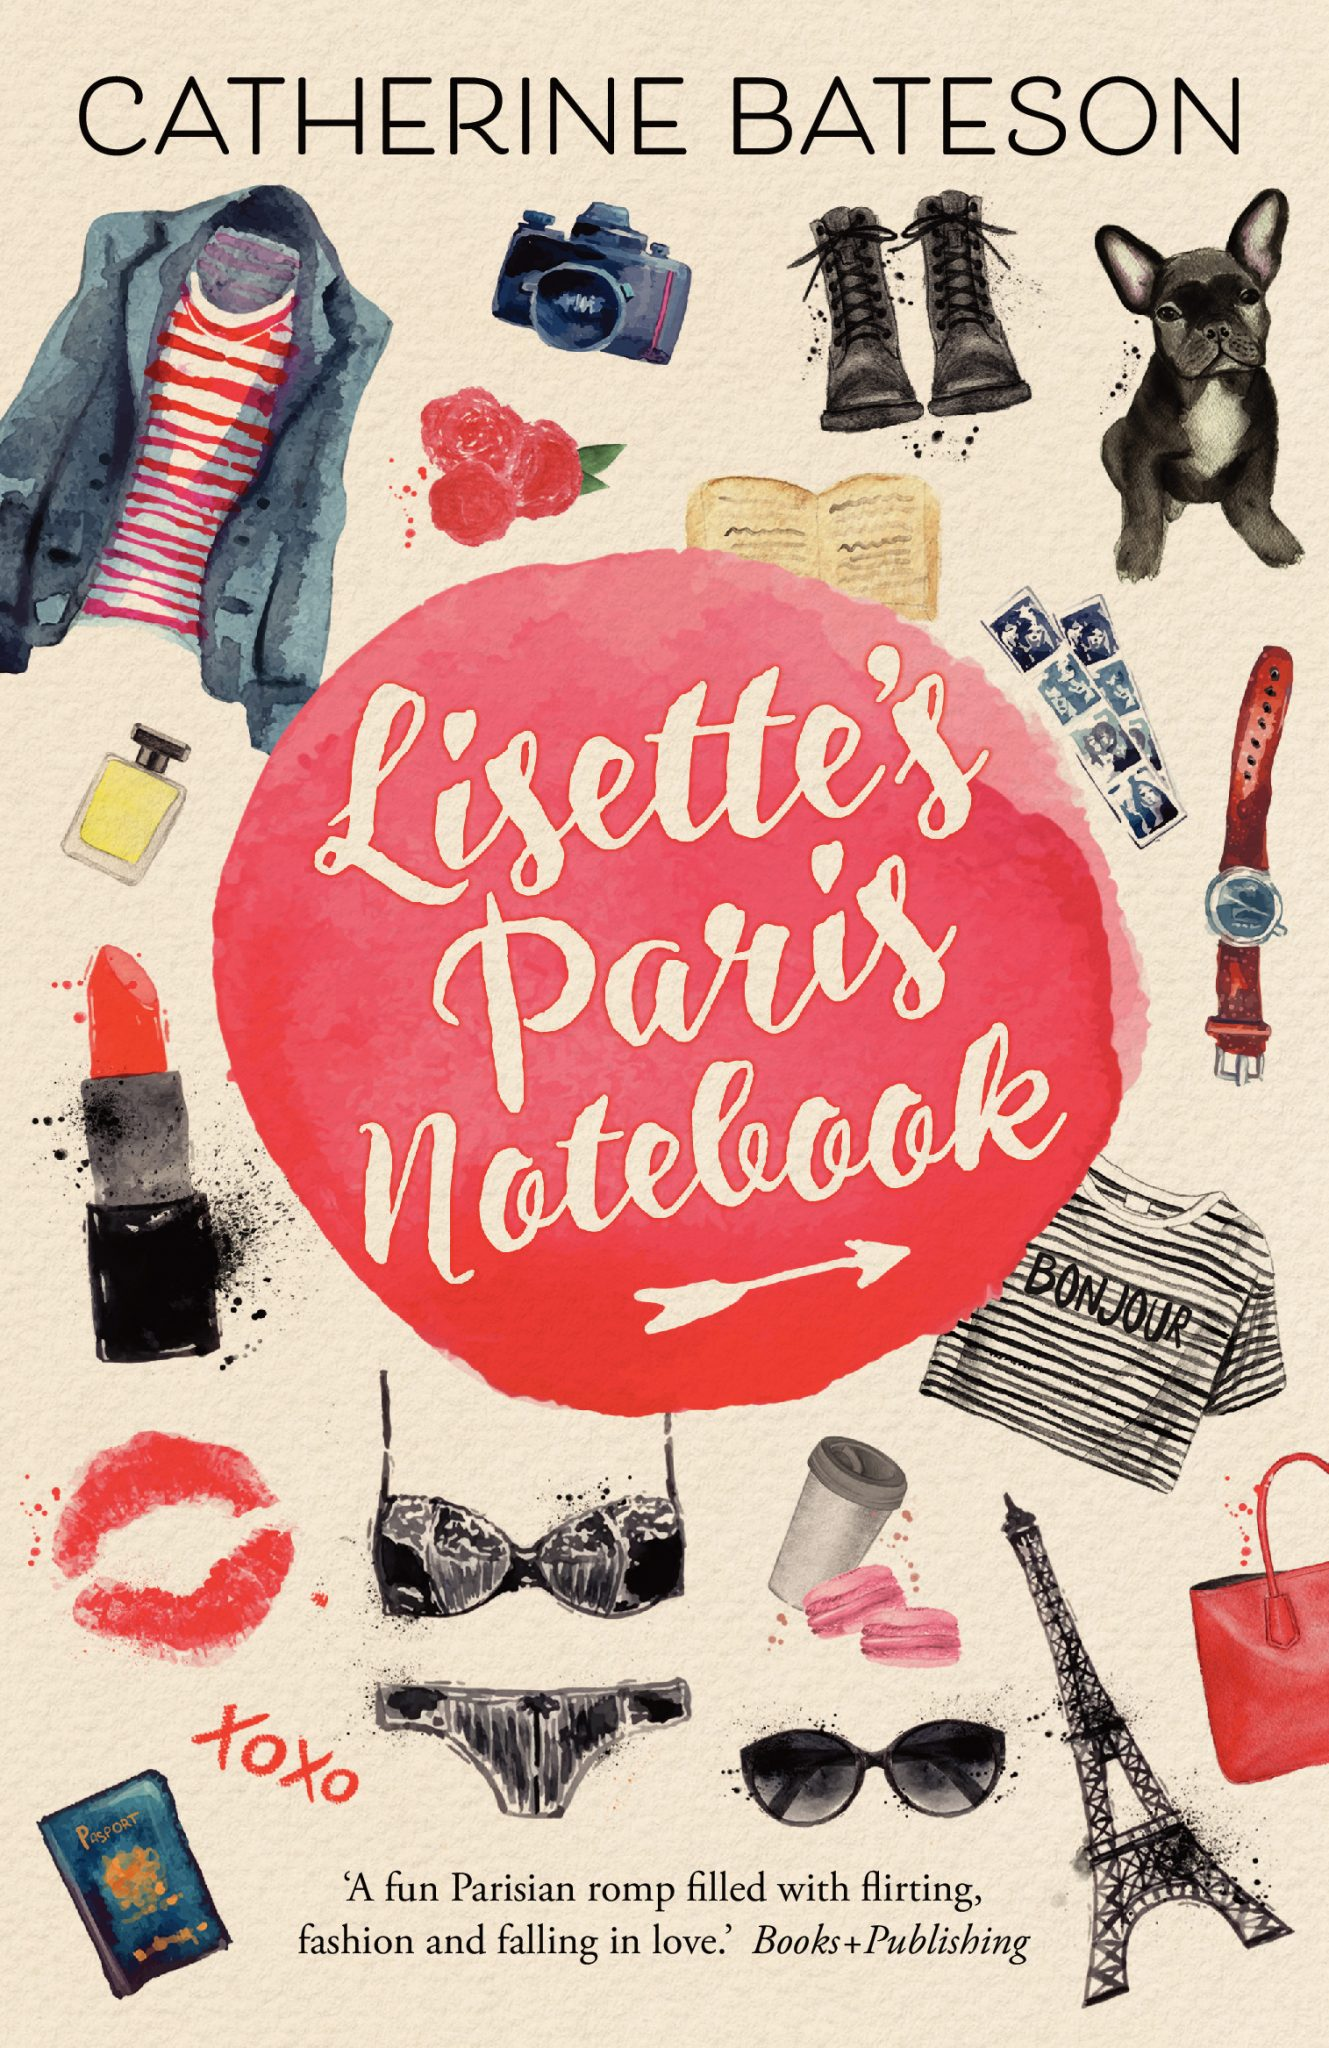 Lisette's Paris Notebook - Catherine Bateson